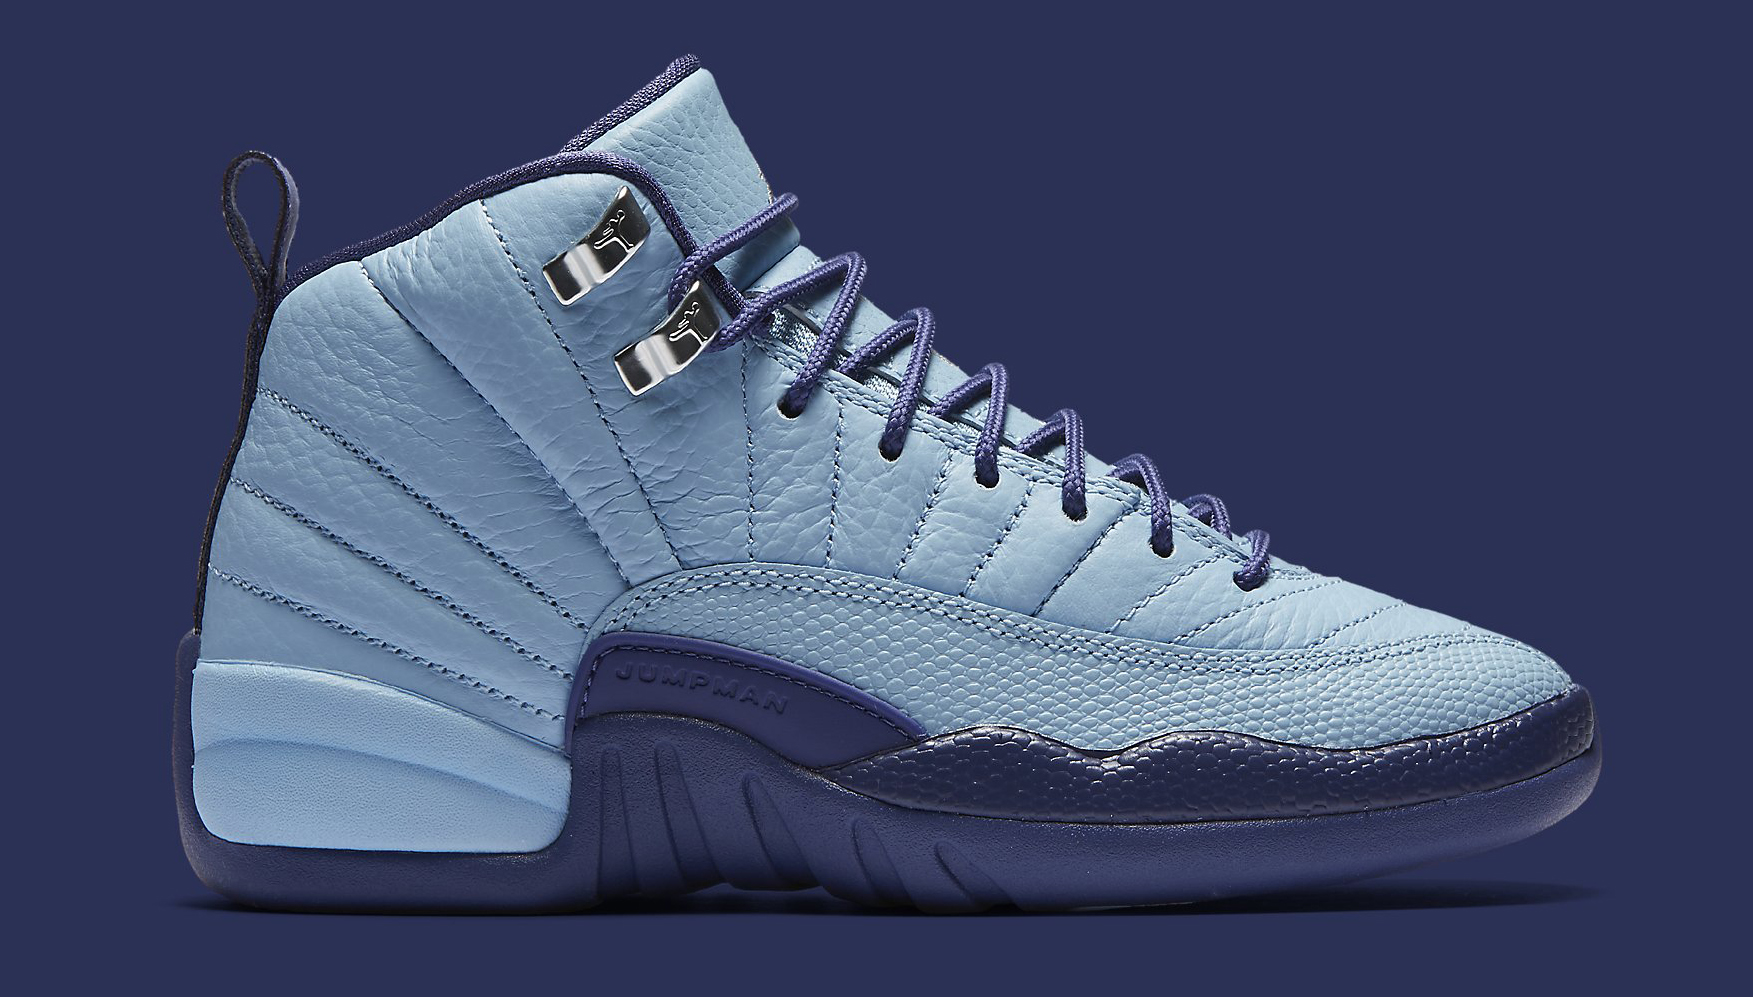 reputable site 961c7 31e80 Air Jordan 12 GS 510815-418 Blue Cap Profile